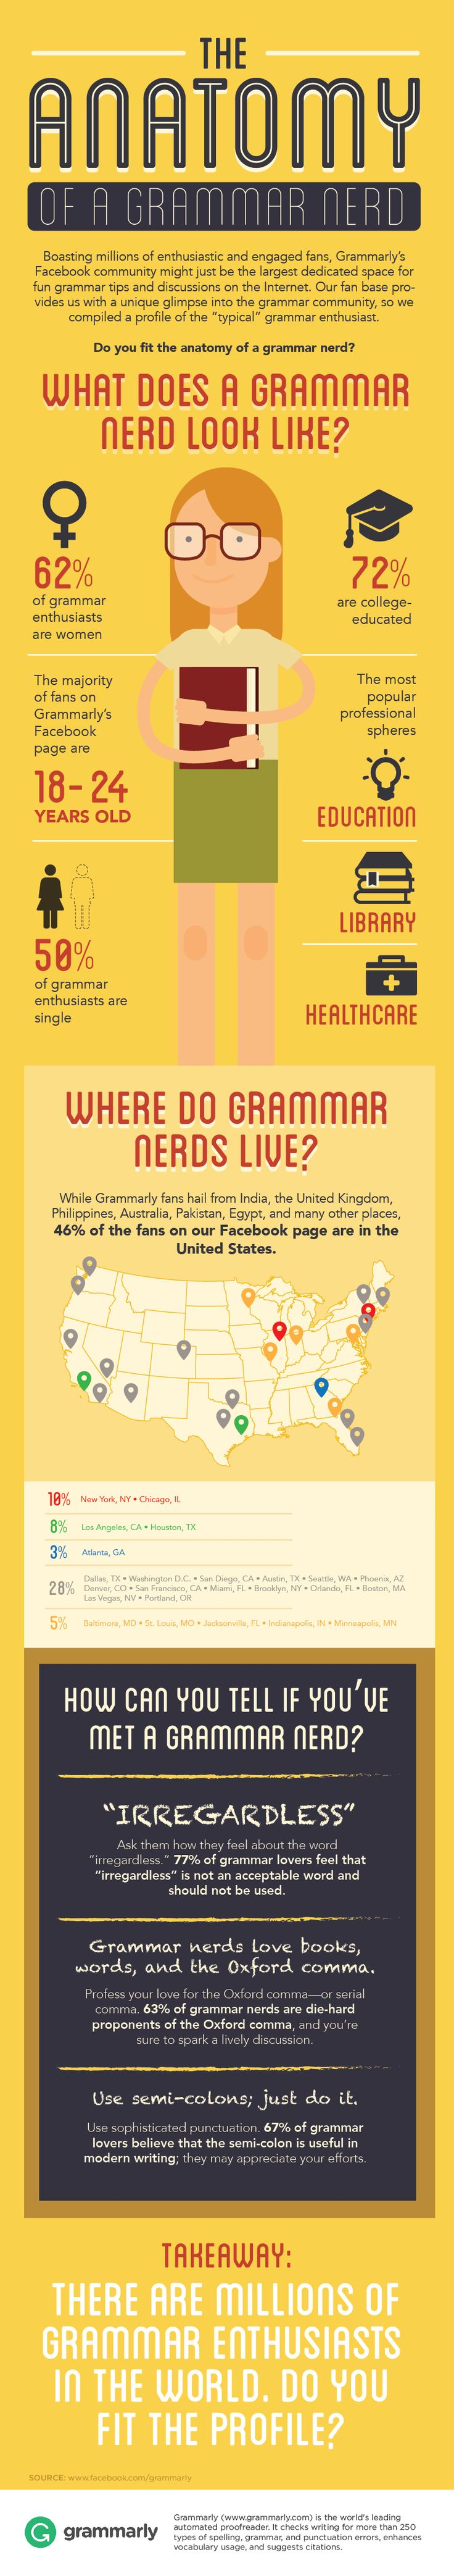 1000+ images about Grammar Nerd on Pinterest | English ...